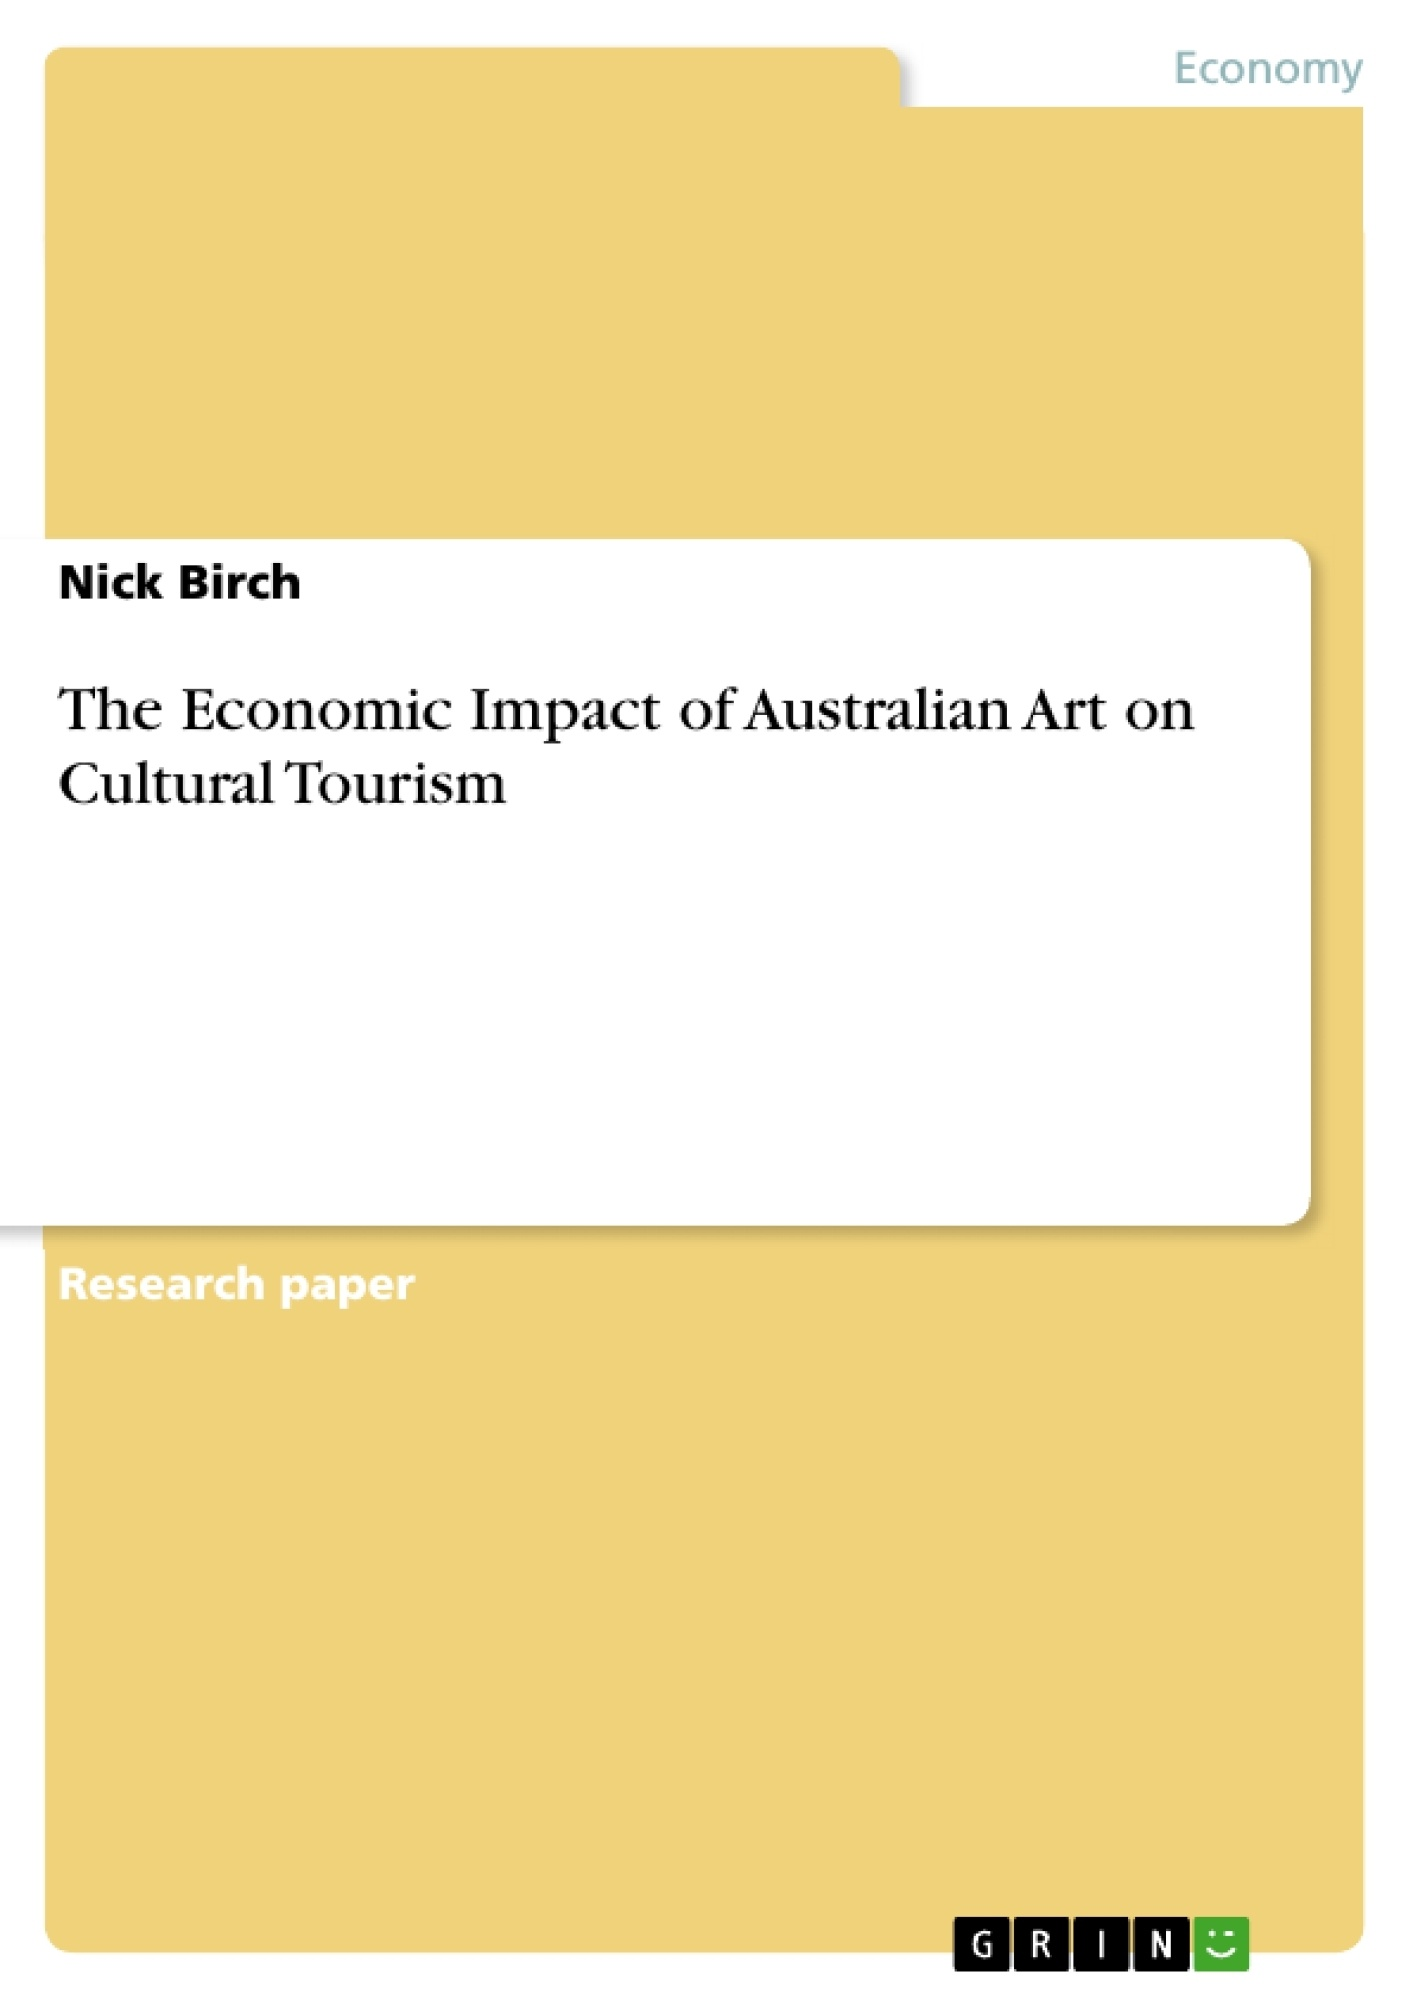 Title: The Economic Impact of Australian Art on Cultural Tourism